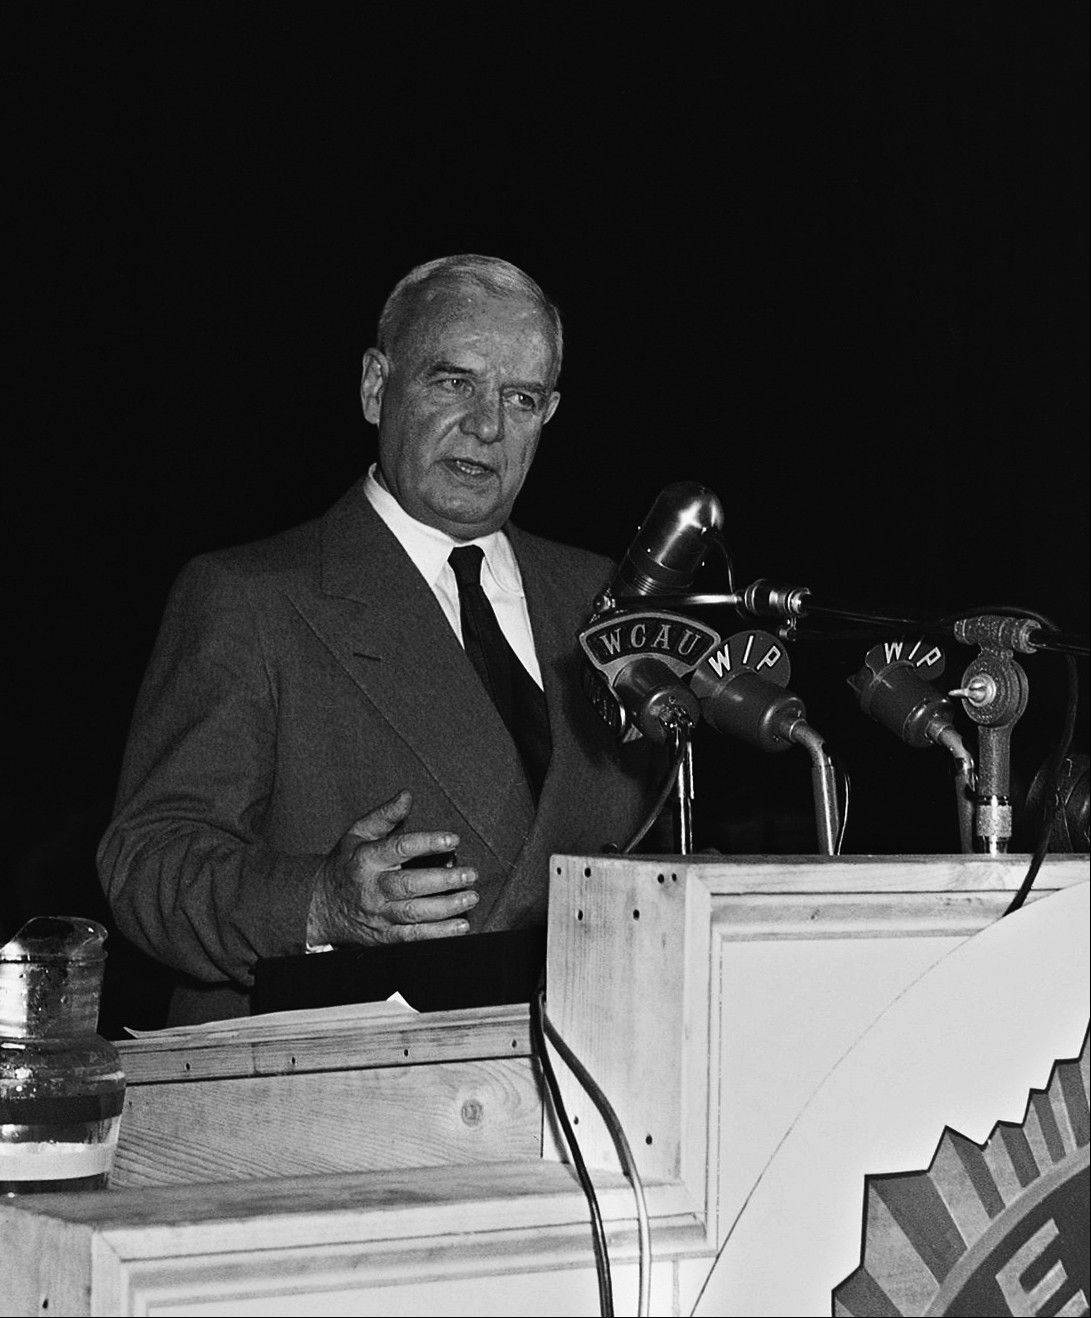 Gen. William �Wild Bill� Donovan, wartime head of the Office of Strategic Services, addresses delegates to the American Legion Convention in Philadelphia.